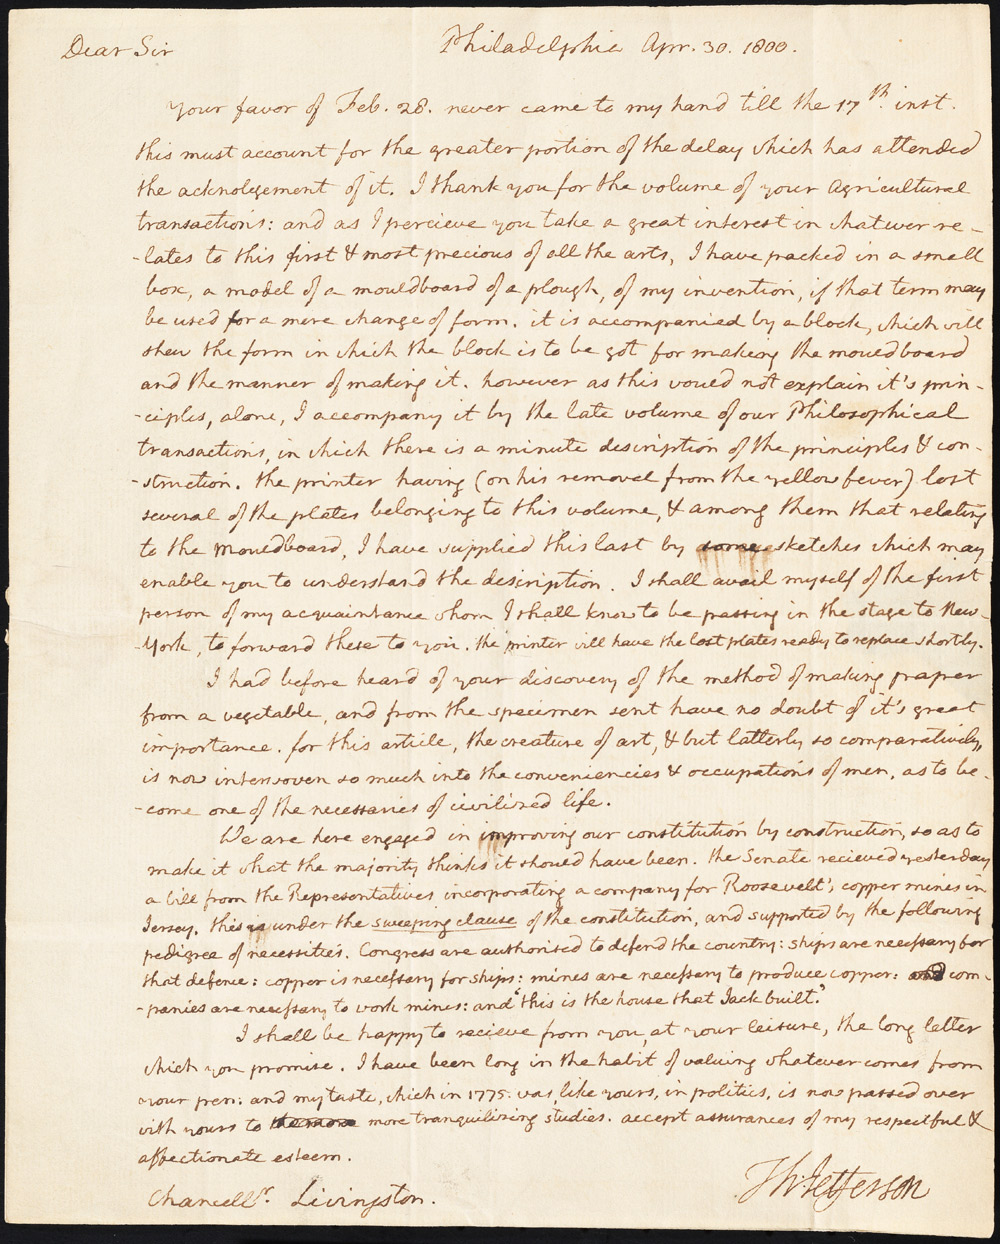 Carta ao Chanceler Robert R. Livingston de Thomas Jefferson, 30 de abril de 1800